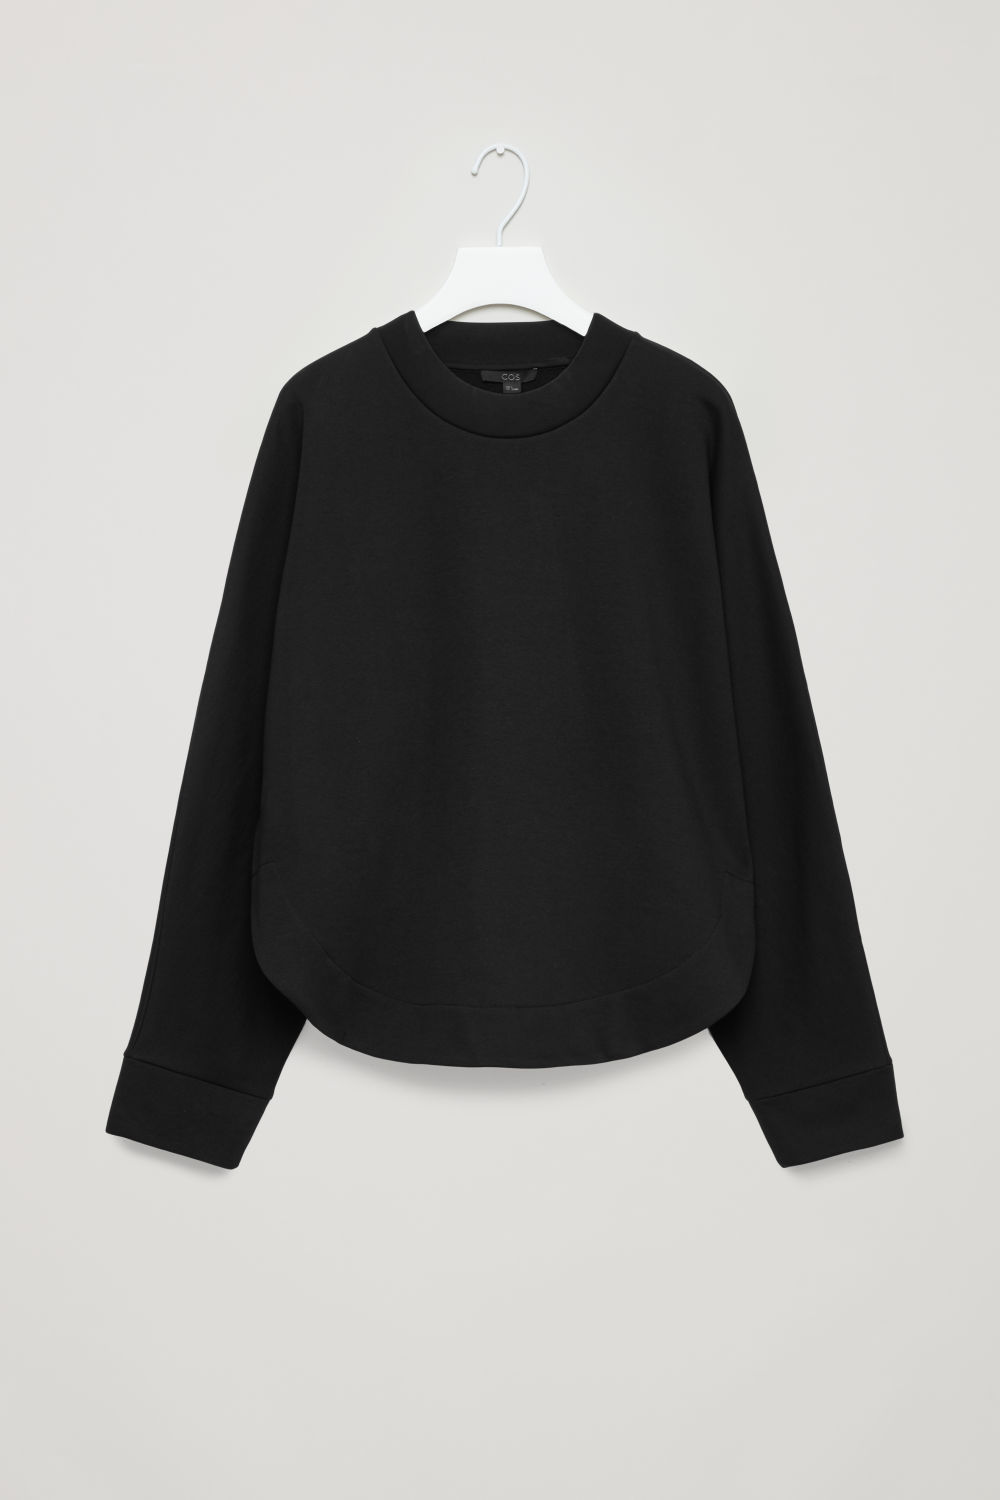 SWEATSHIRT WITH CURVED HEM